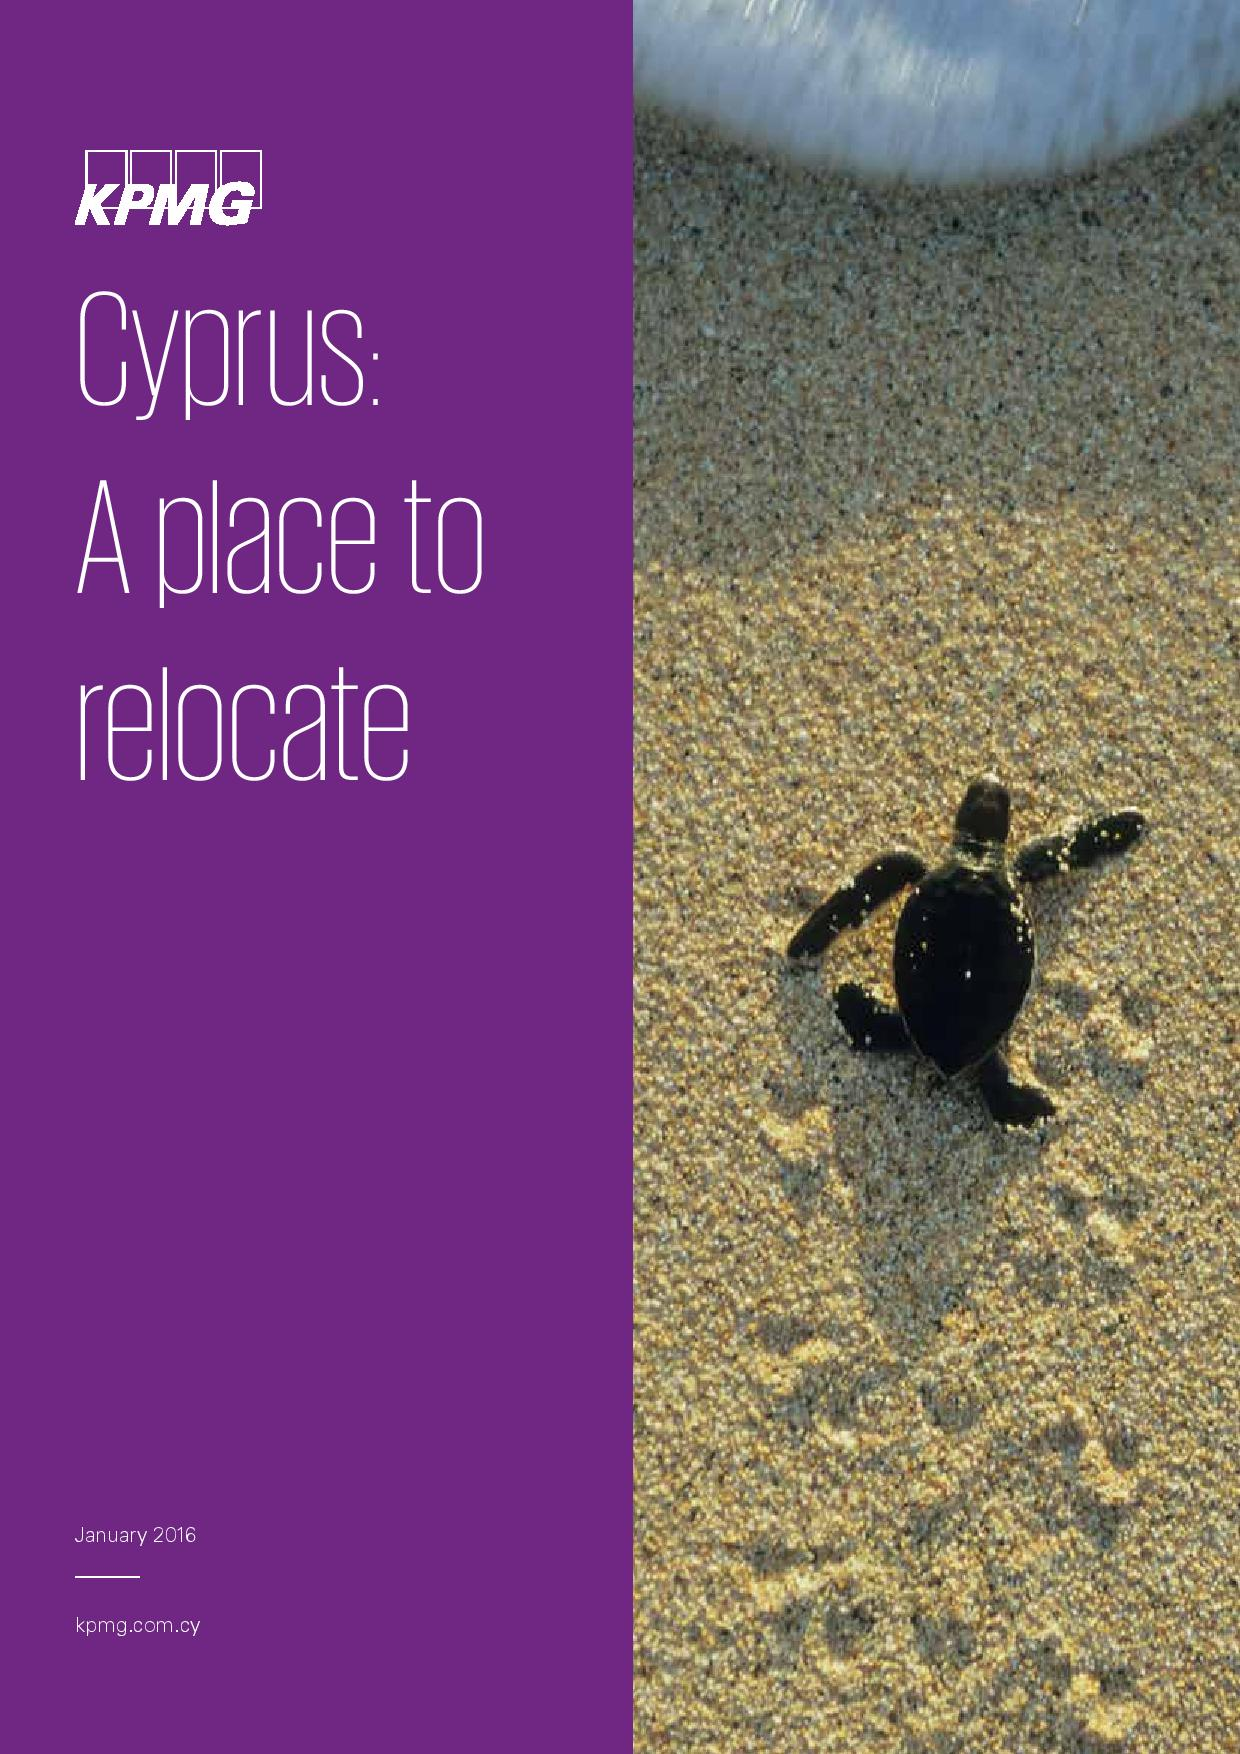 Cyprus: A place to relocate